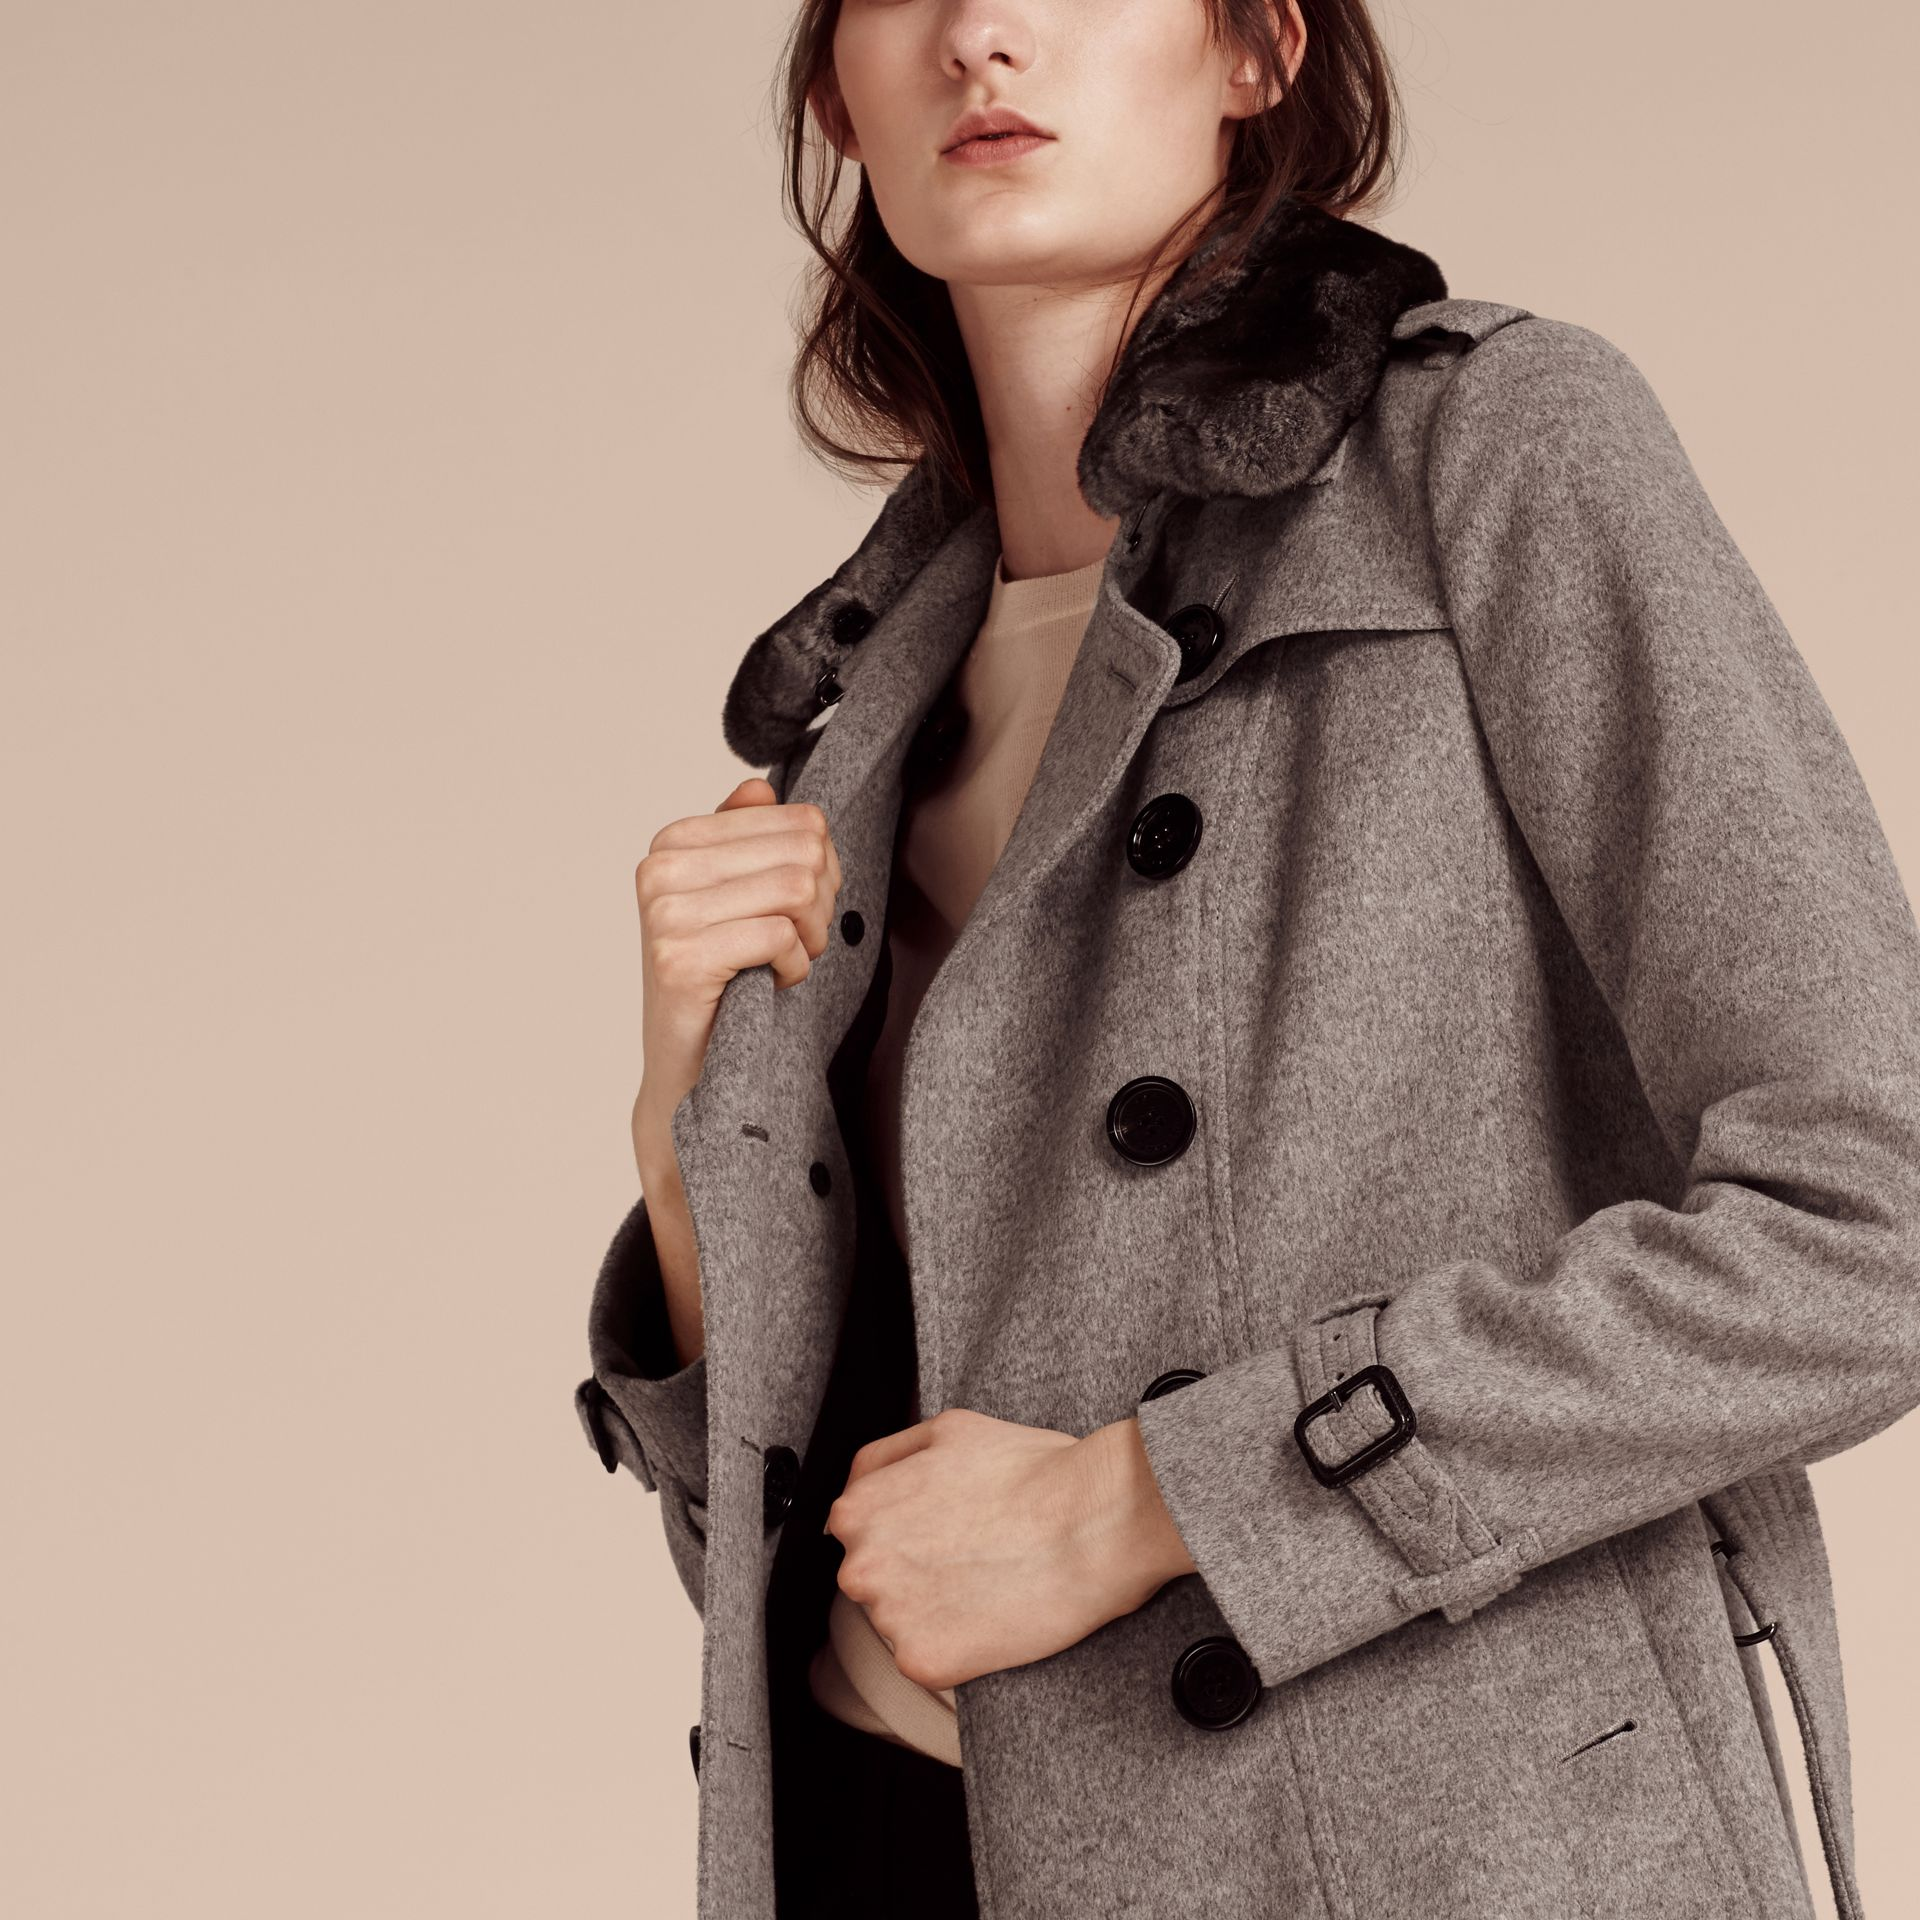 Pale grey melange Wool Cashmere Trench Coat with Fur Collar - gallery image 4